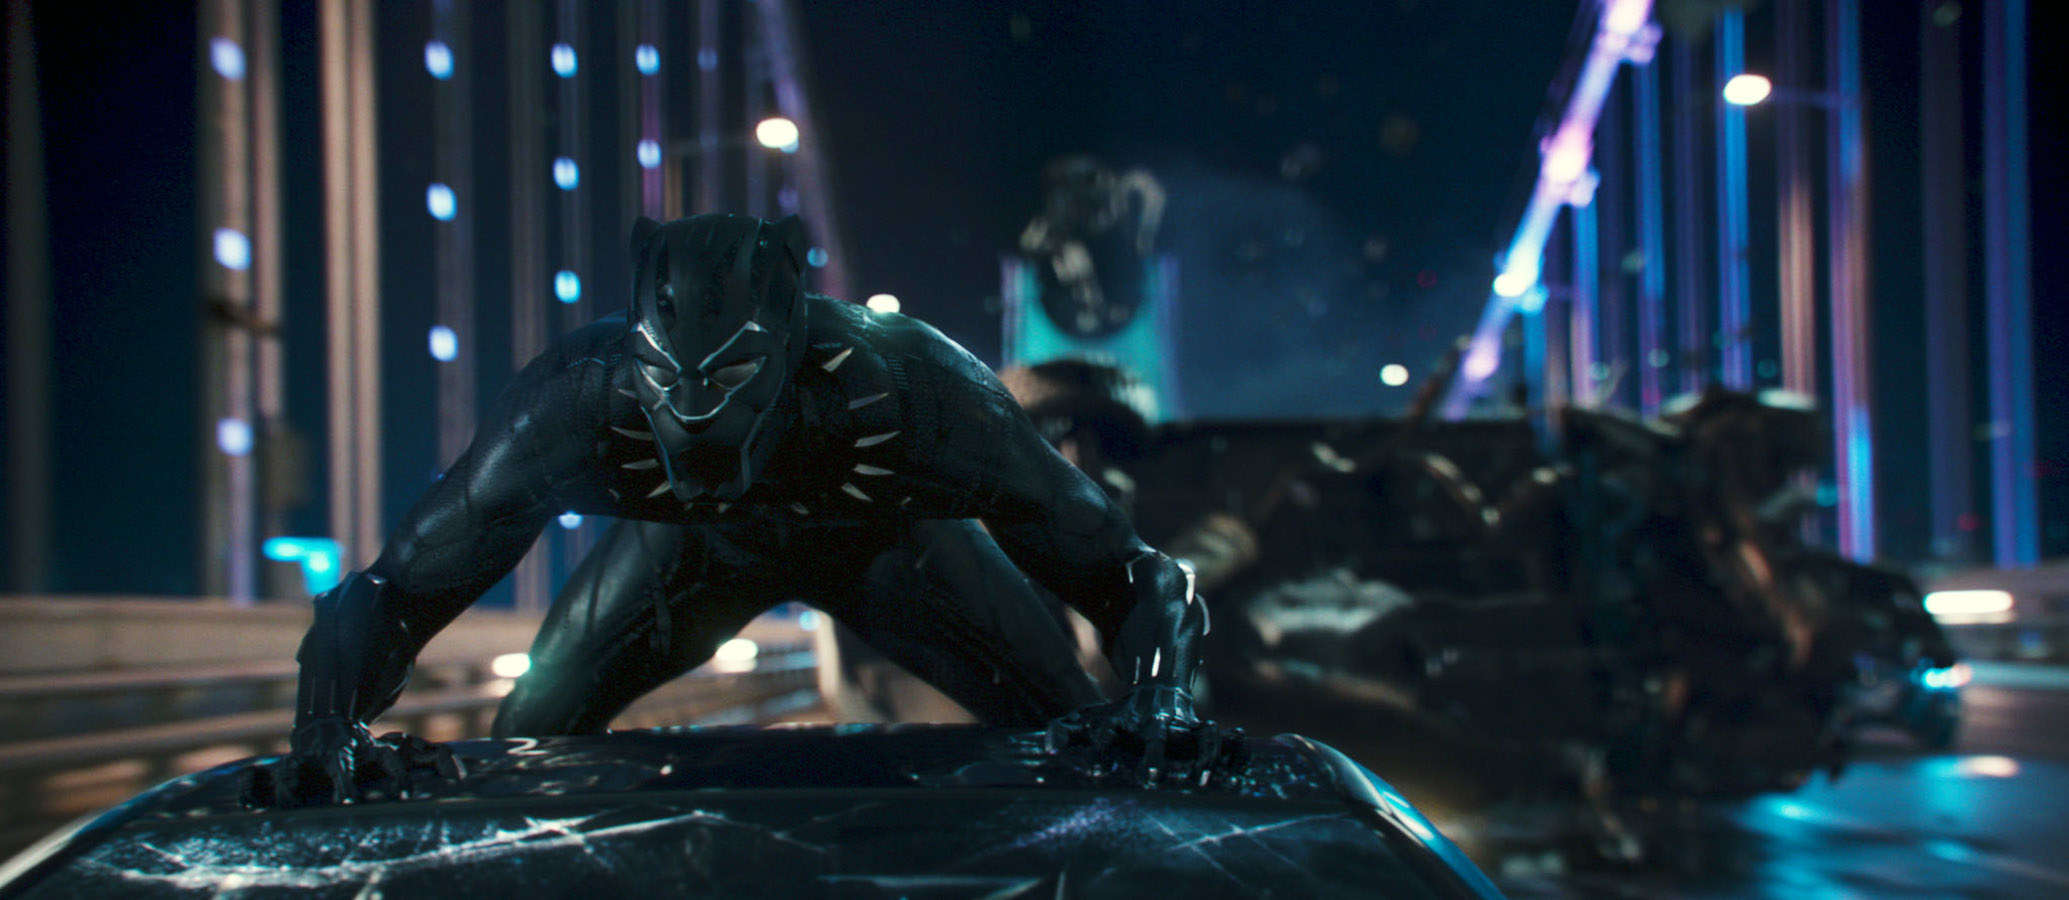 Chadwick Boseman as Black Panther on top of a moving vehicle